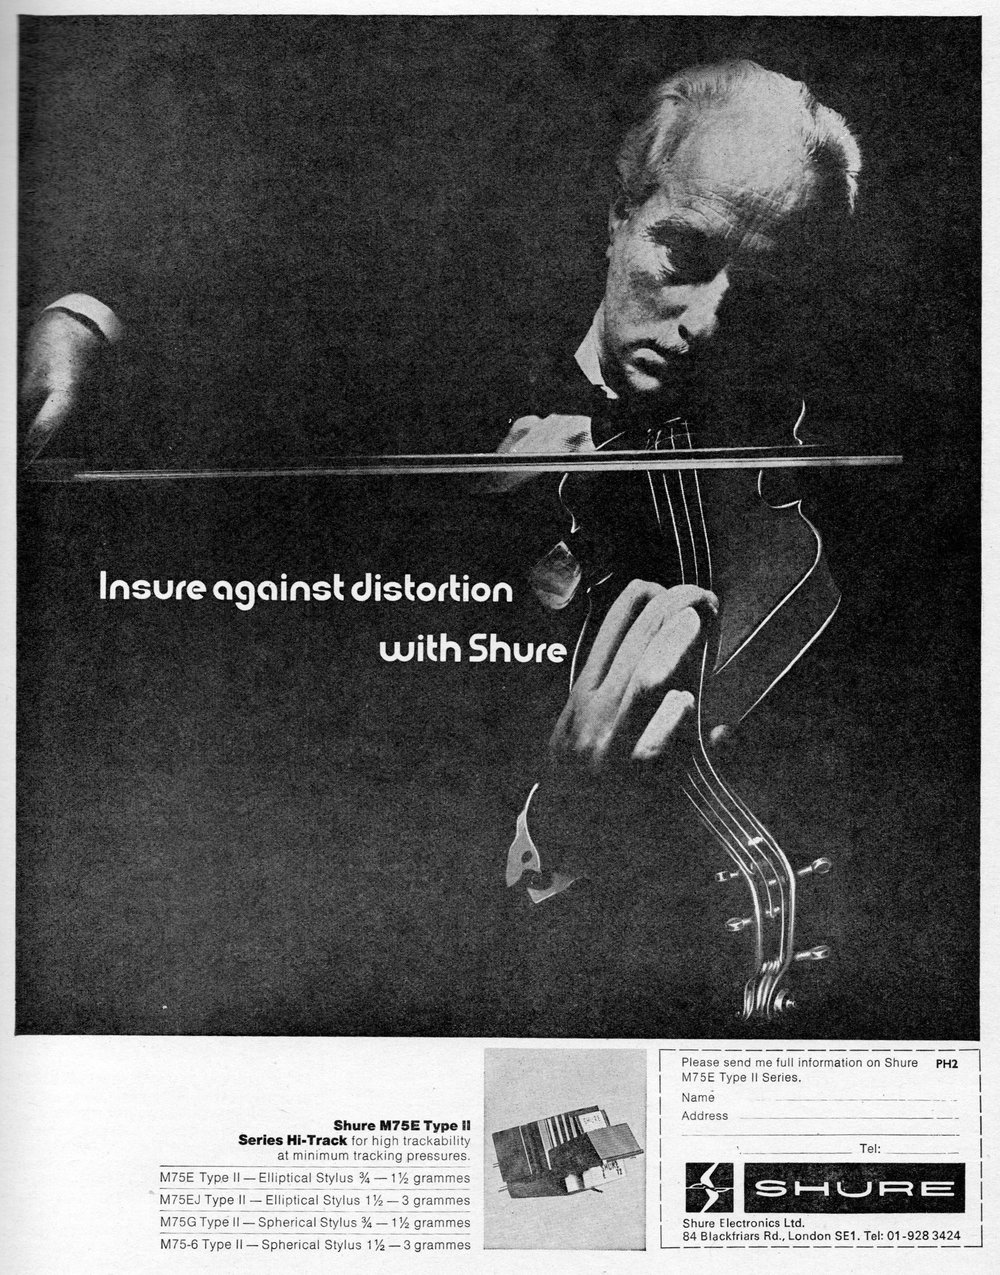 Shure M75E Type II Advert (1971).jpg